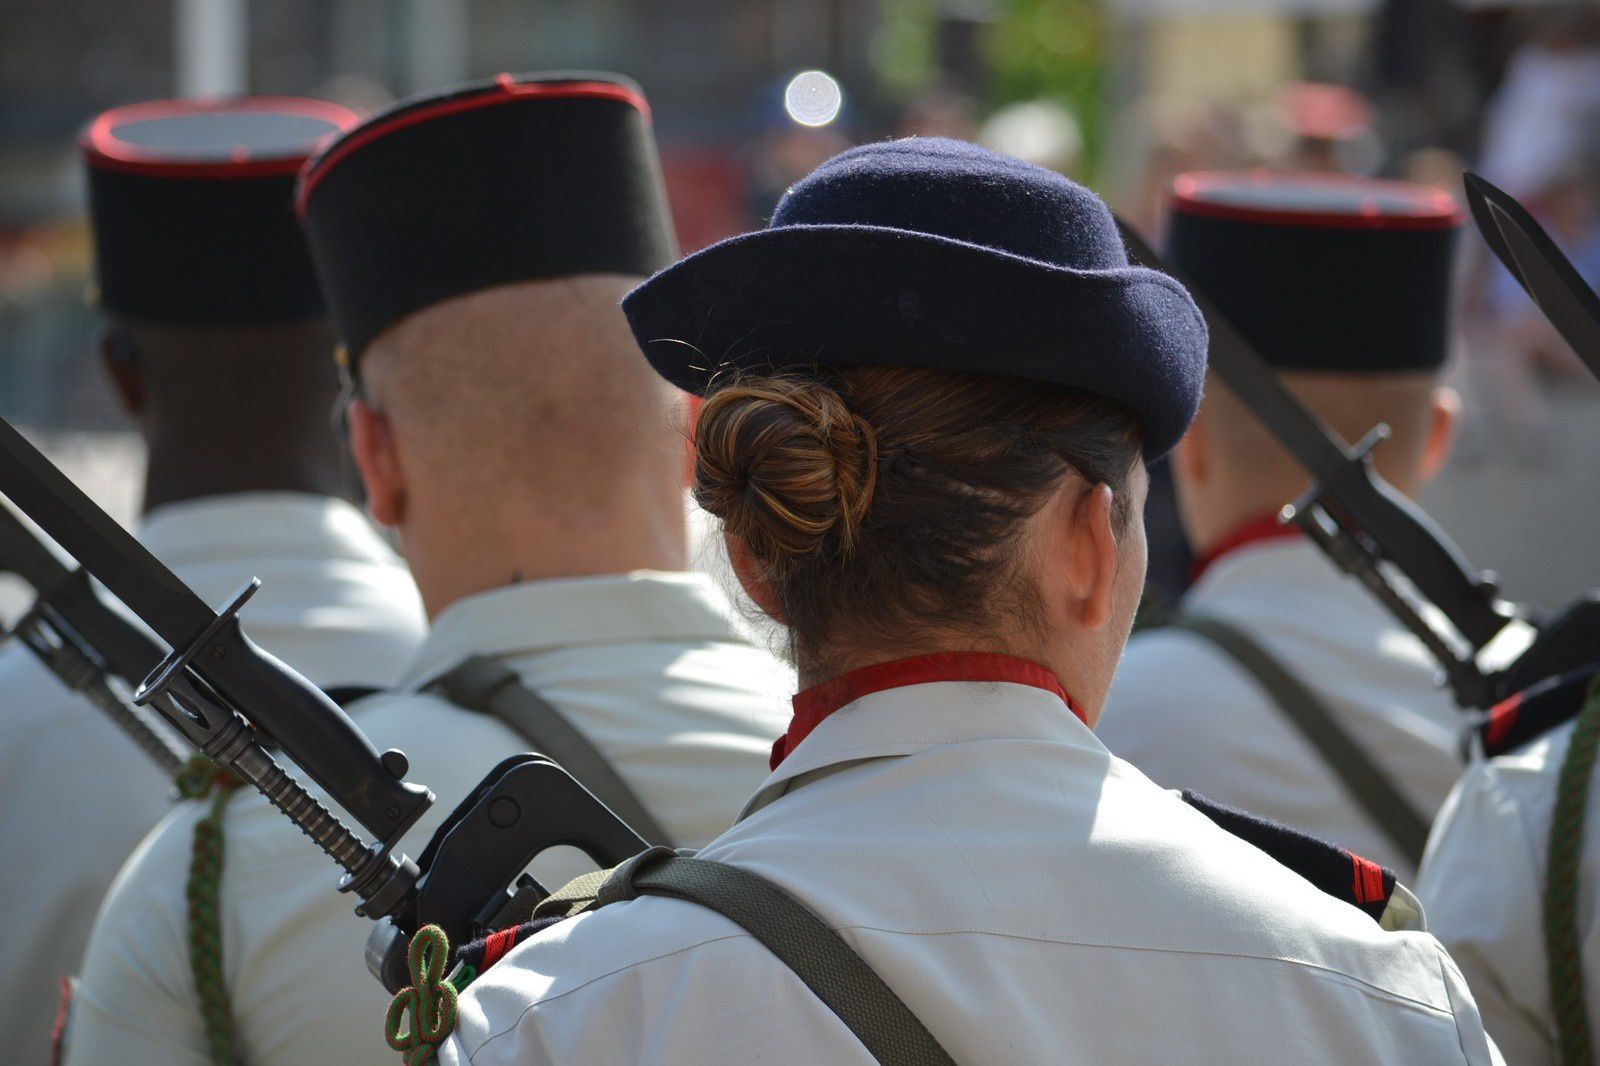 Fête nationale à Belfort